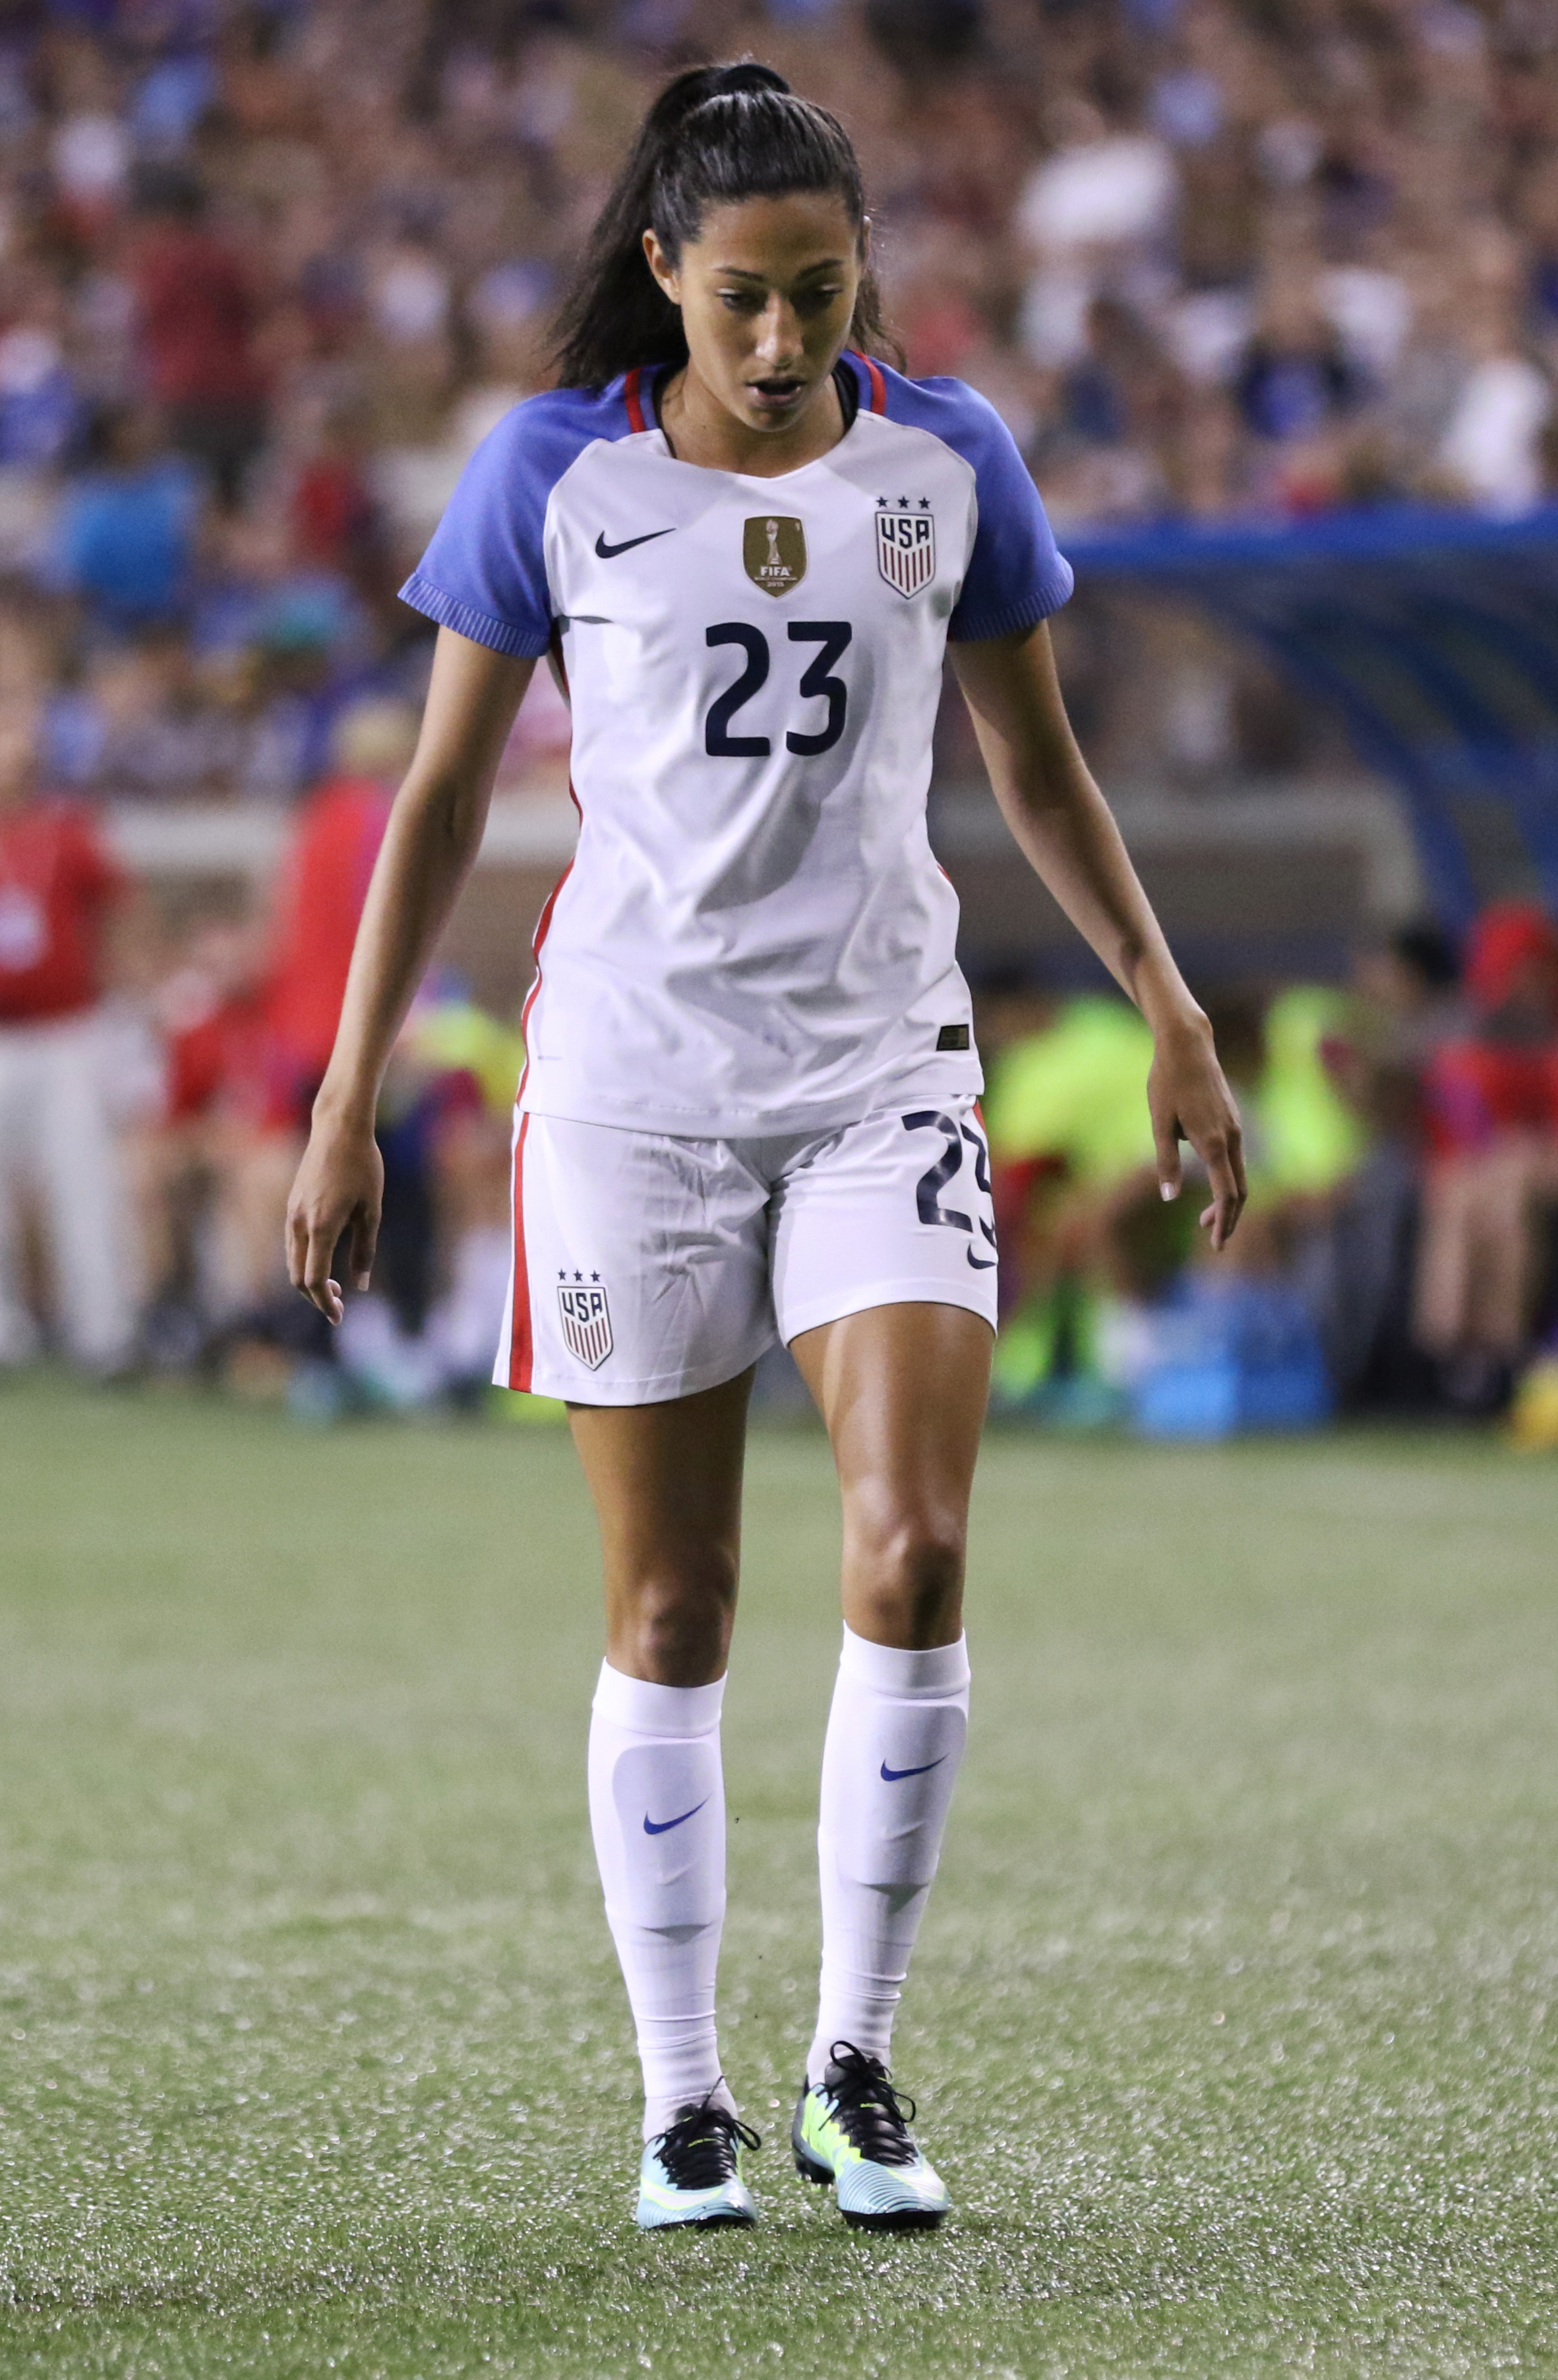 Christen Press nude (85 fotos), video Sexy, Instagram, legs 2020